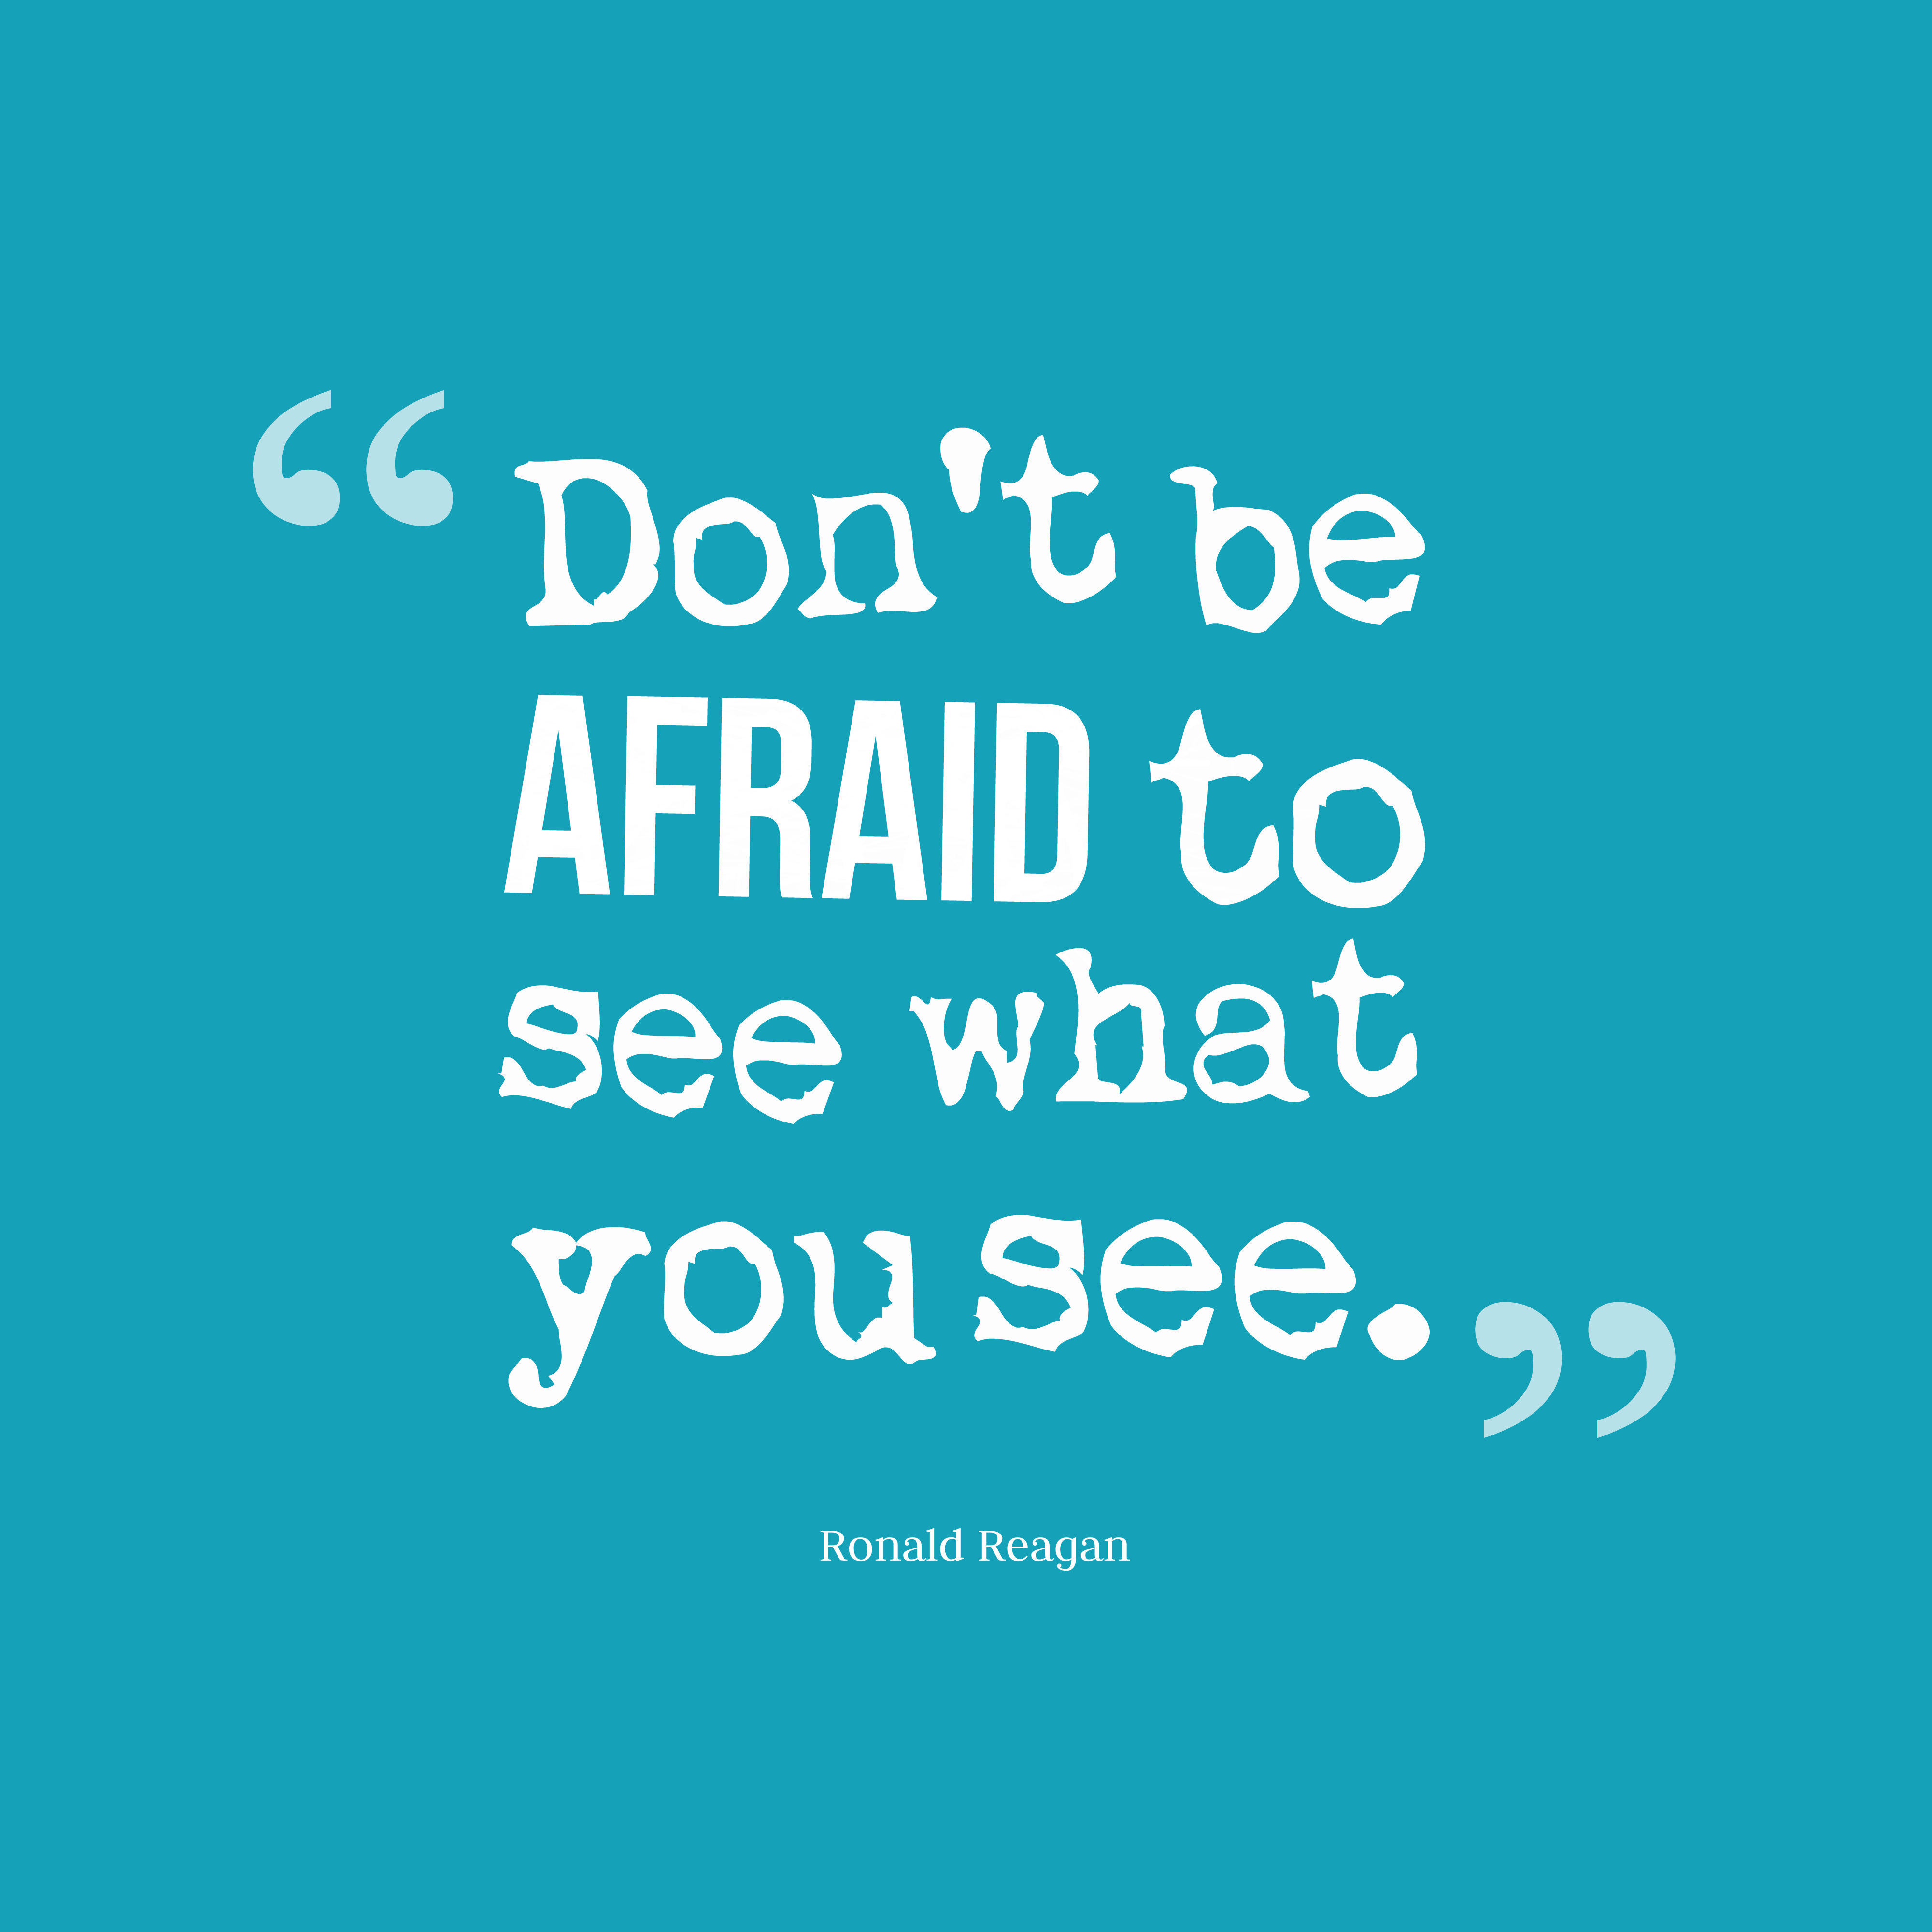 Quotes image of Don't be afraid to see what you see.